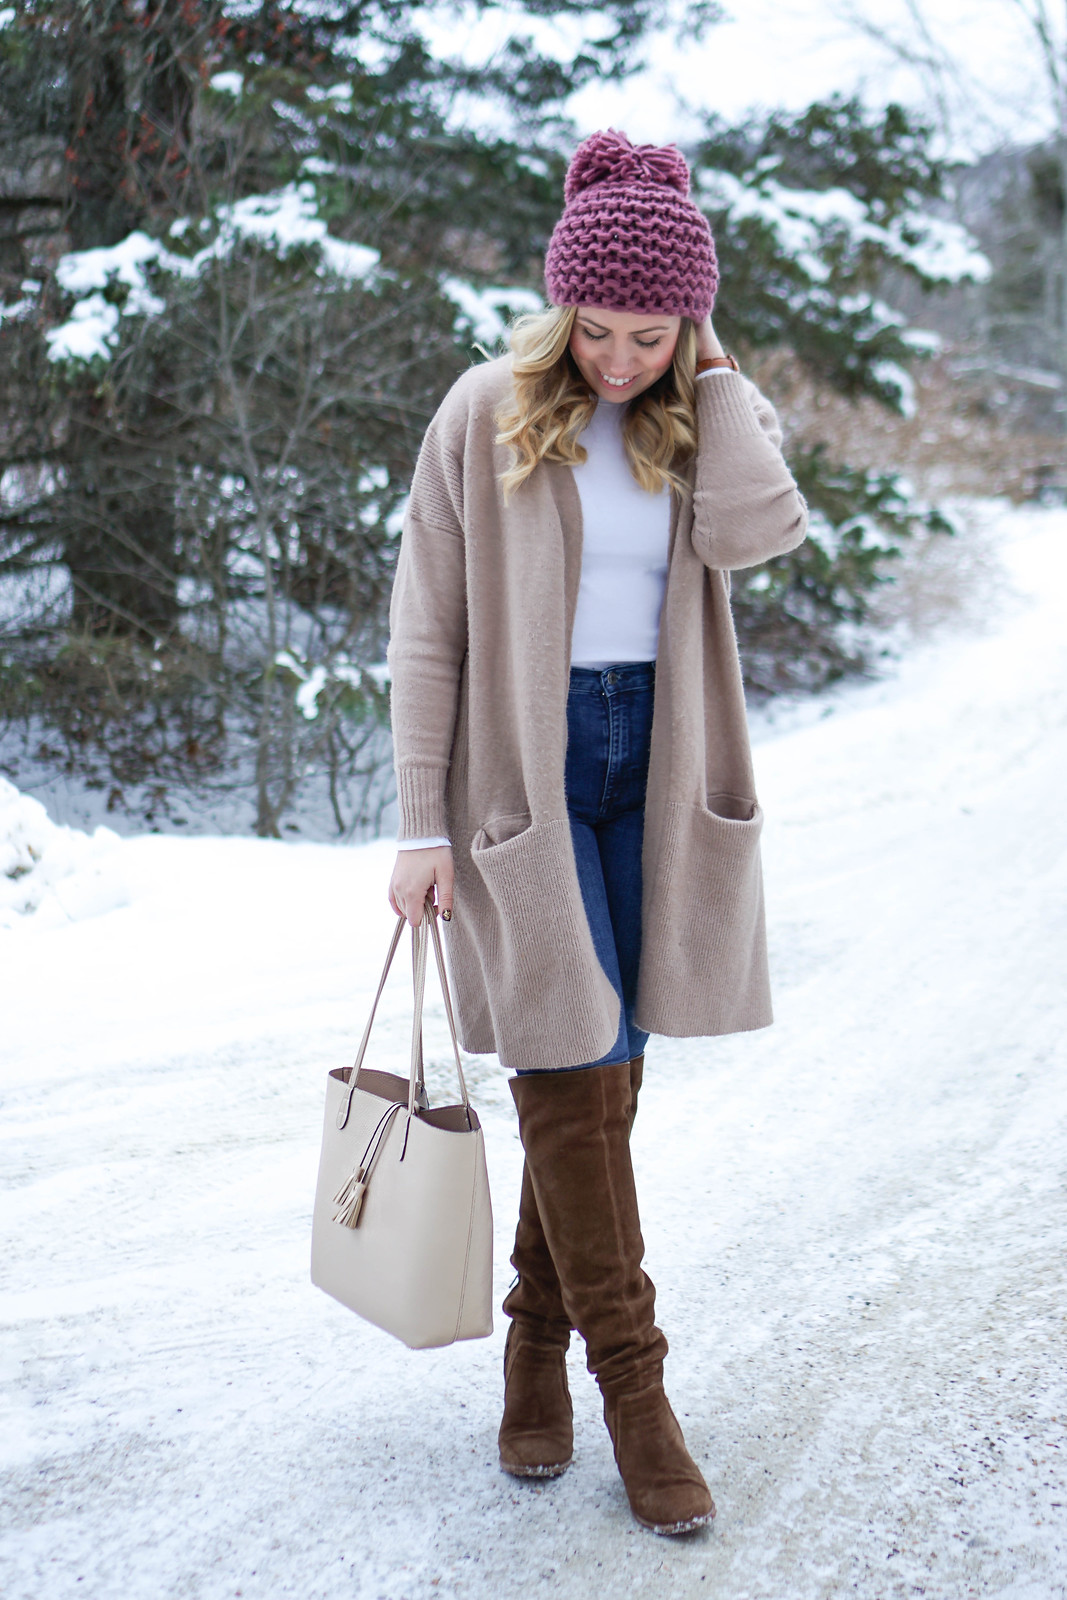 Casual Winter Pastel Outfit in Snow | Pink Pom Pom Beanie and Camel Oversized Sweater Gap High Waisted Jeans Vince Camuto OTK Brown Suede Boots